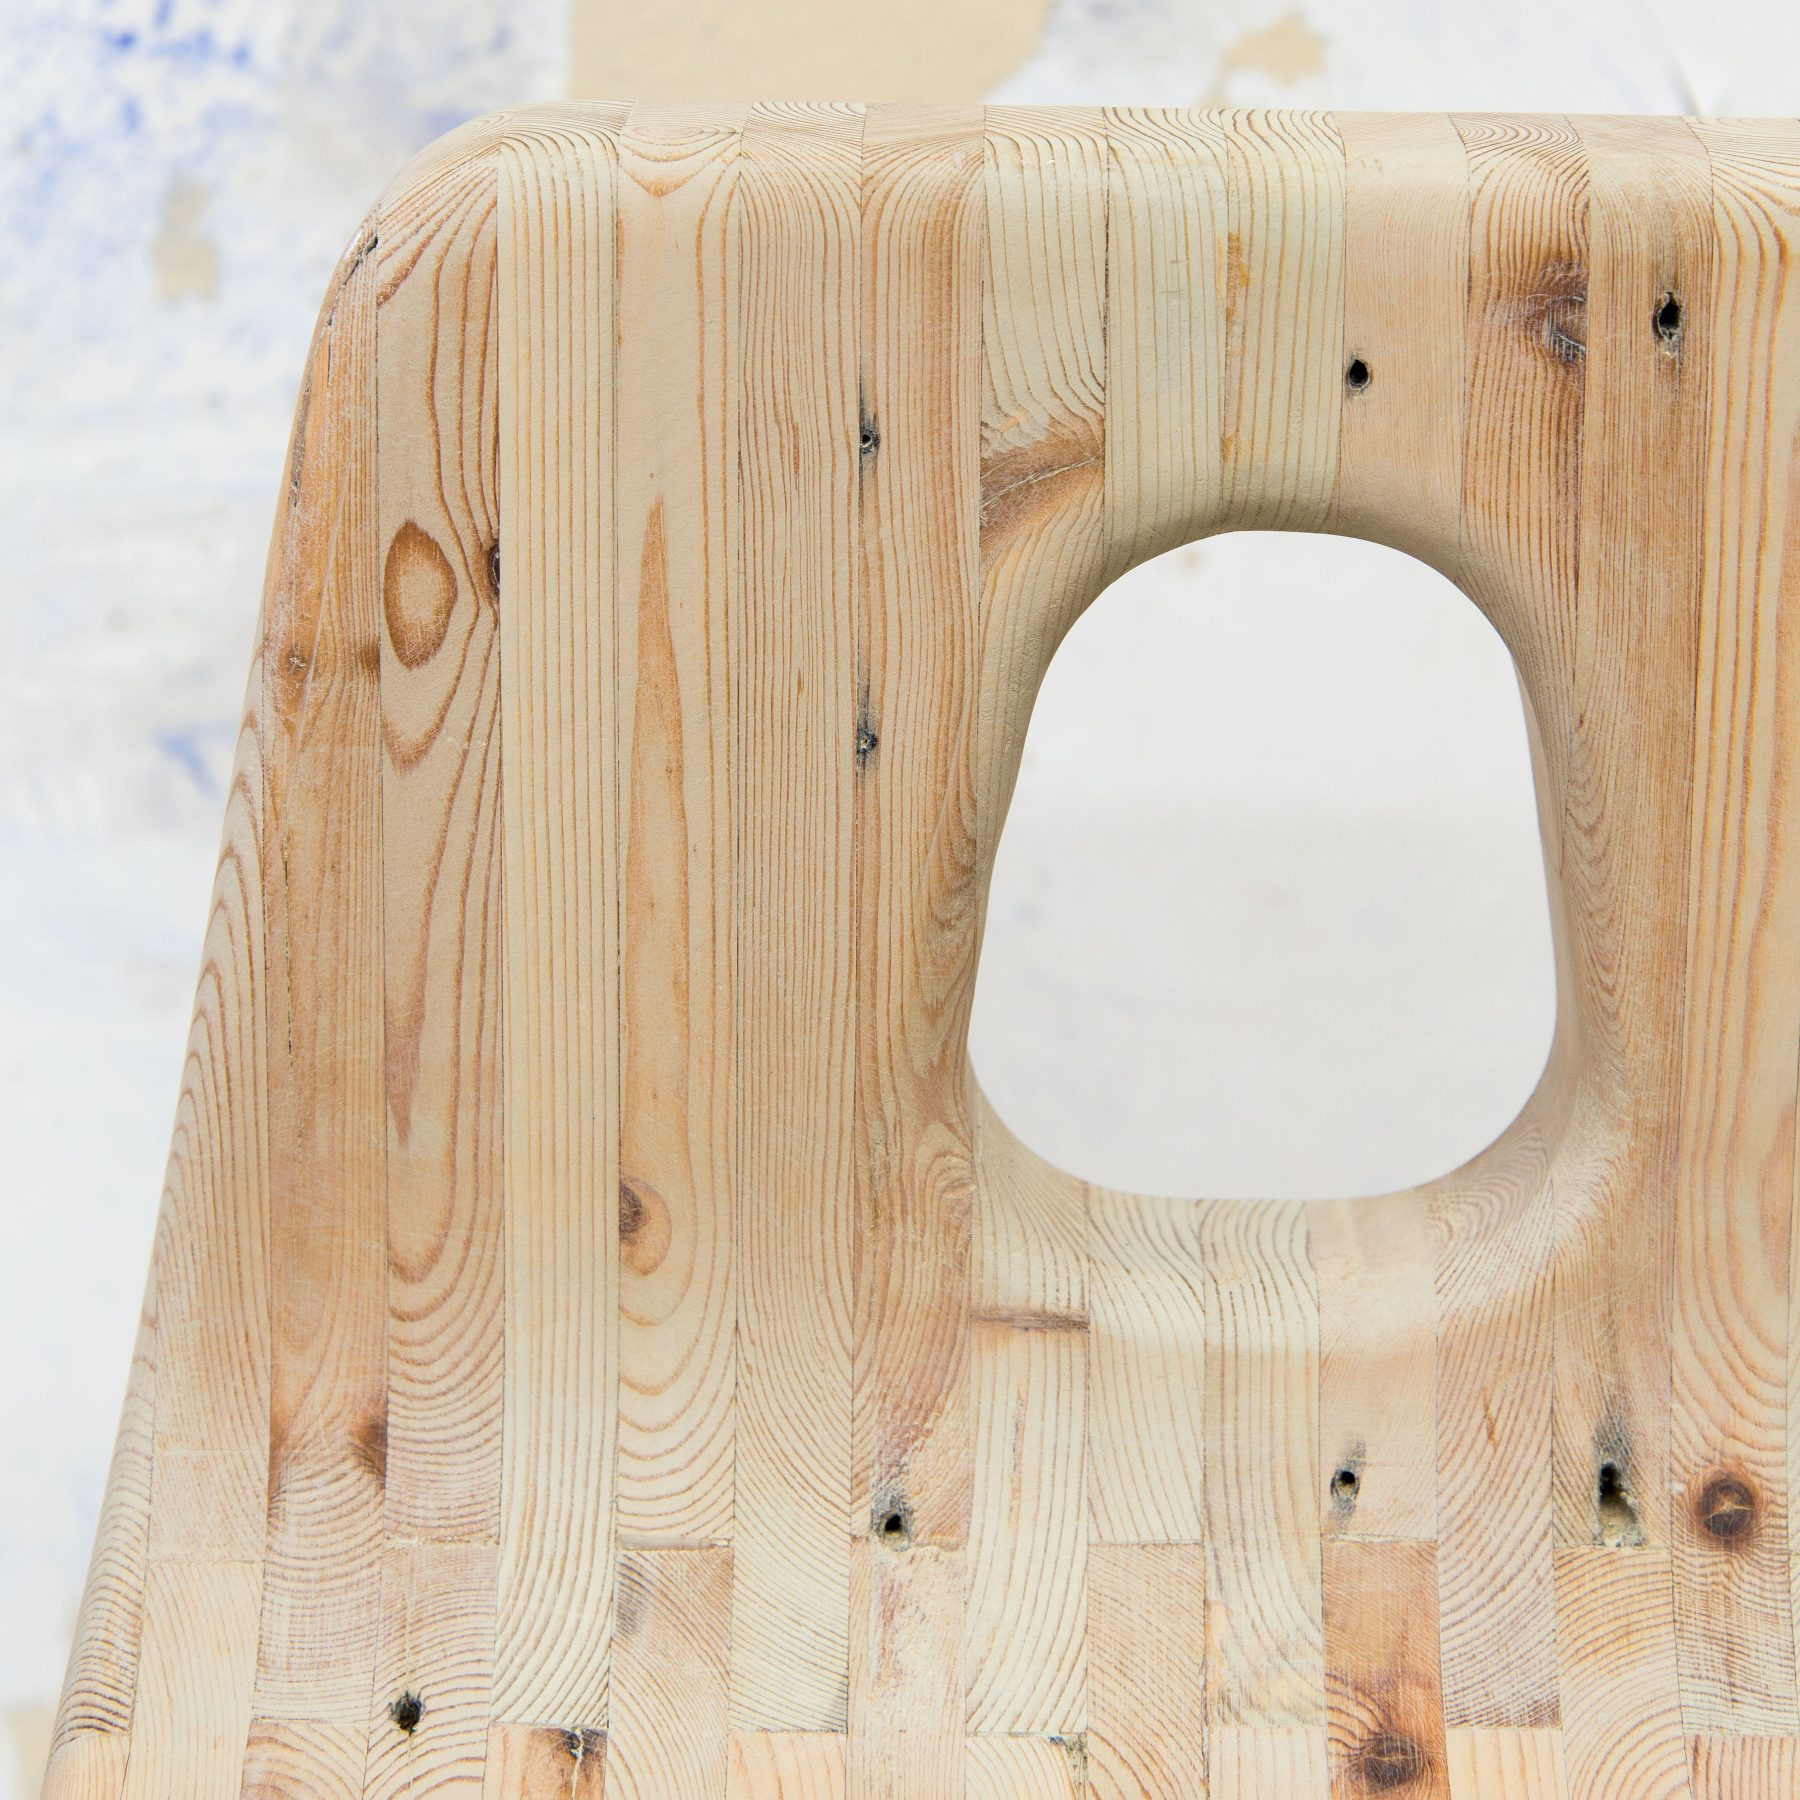 Jan Hendzel Studio good day chair-6